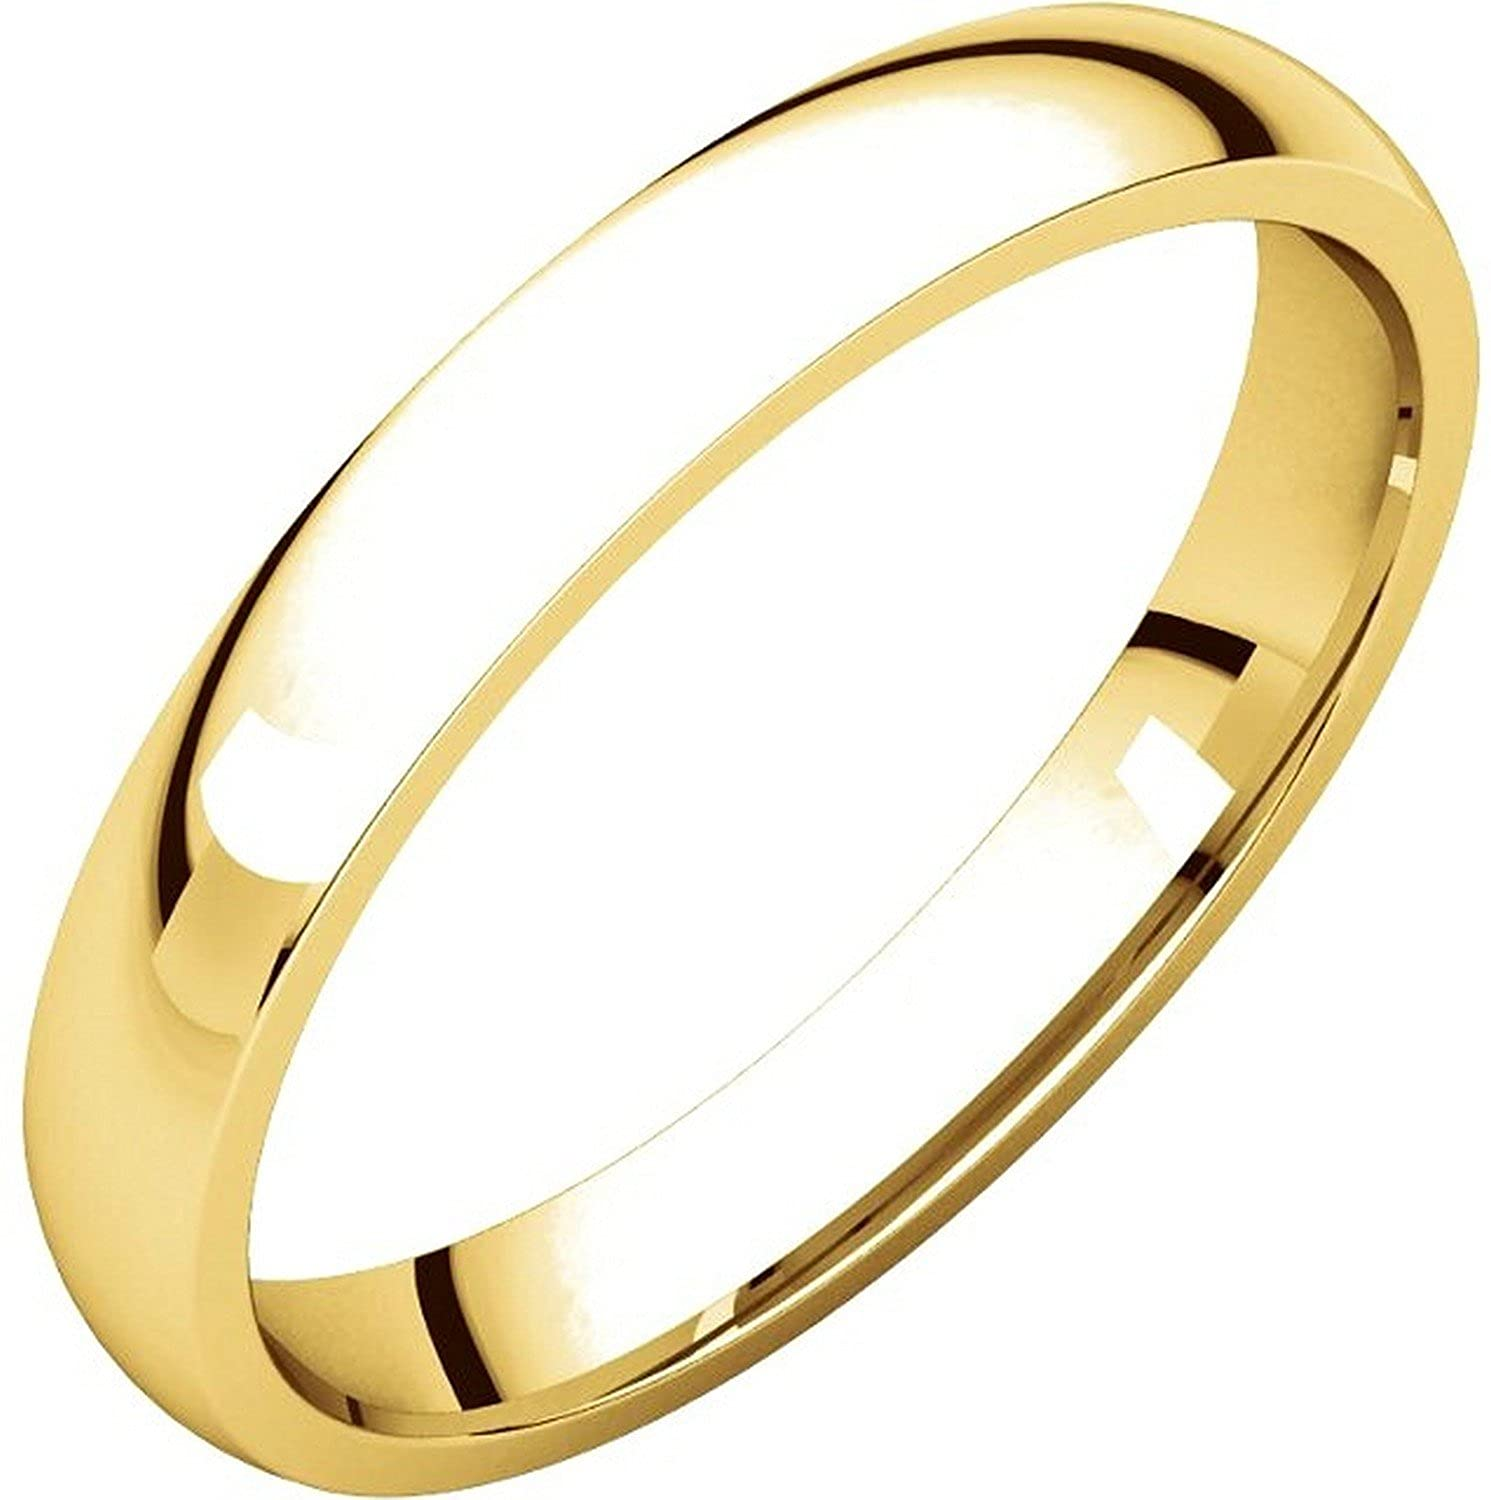 Men's and Women's 18k Yellow Gold, 3mm Wide, Comfort Fit, Plain Wedding Band